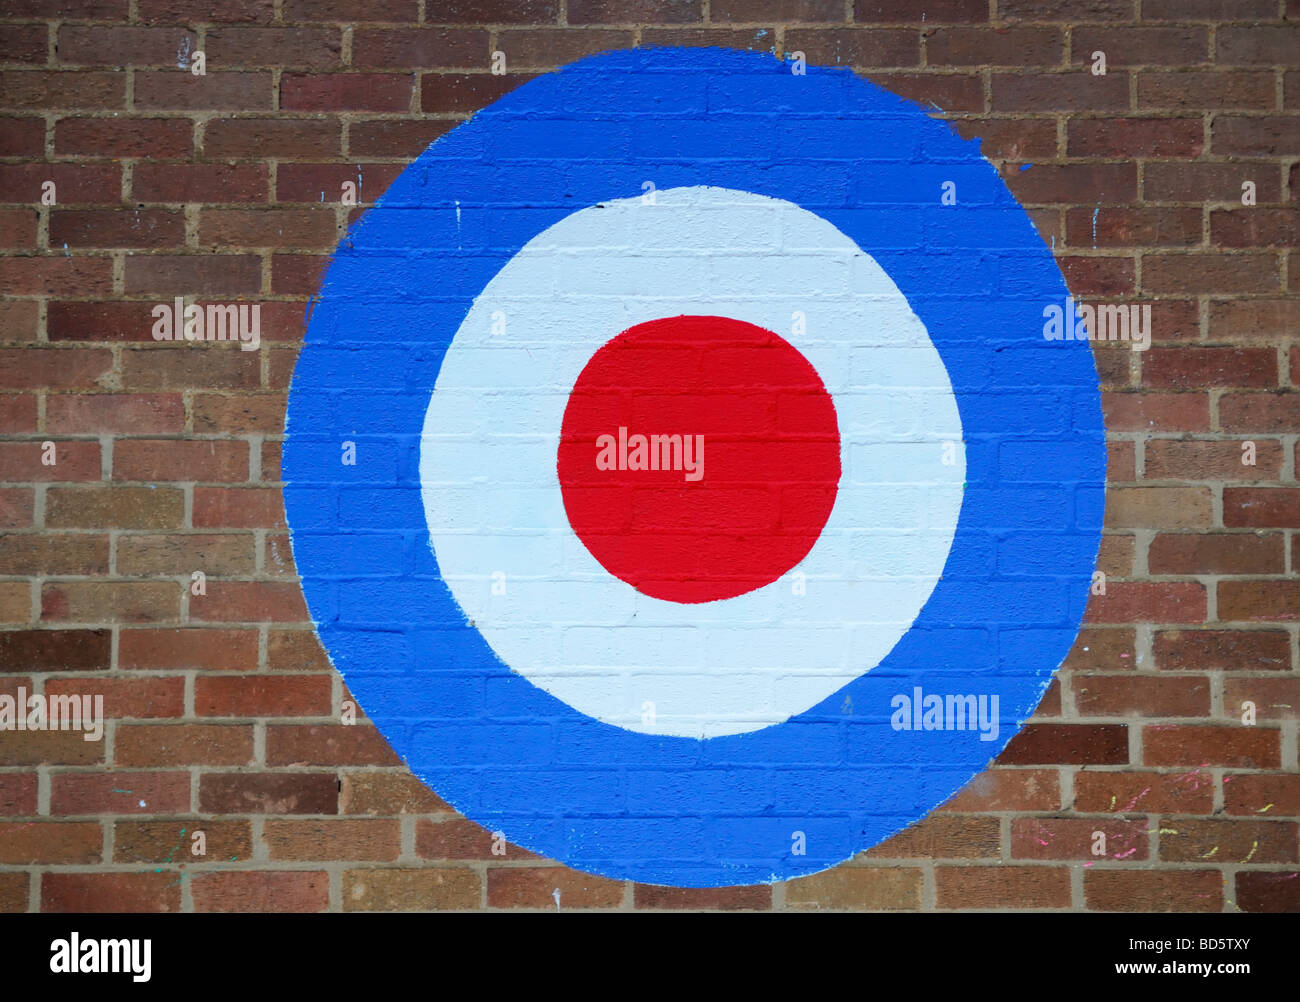 Target Painted on a Wall July 2009 - Stock Image